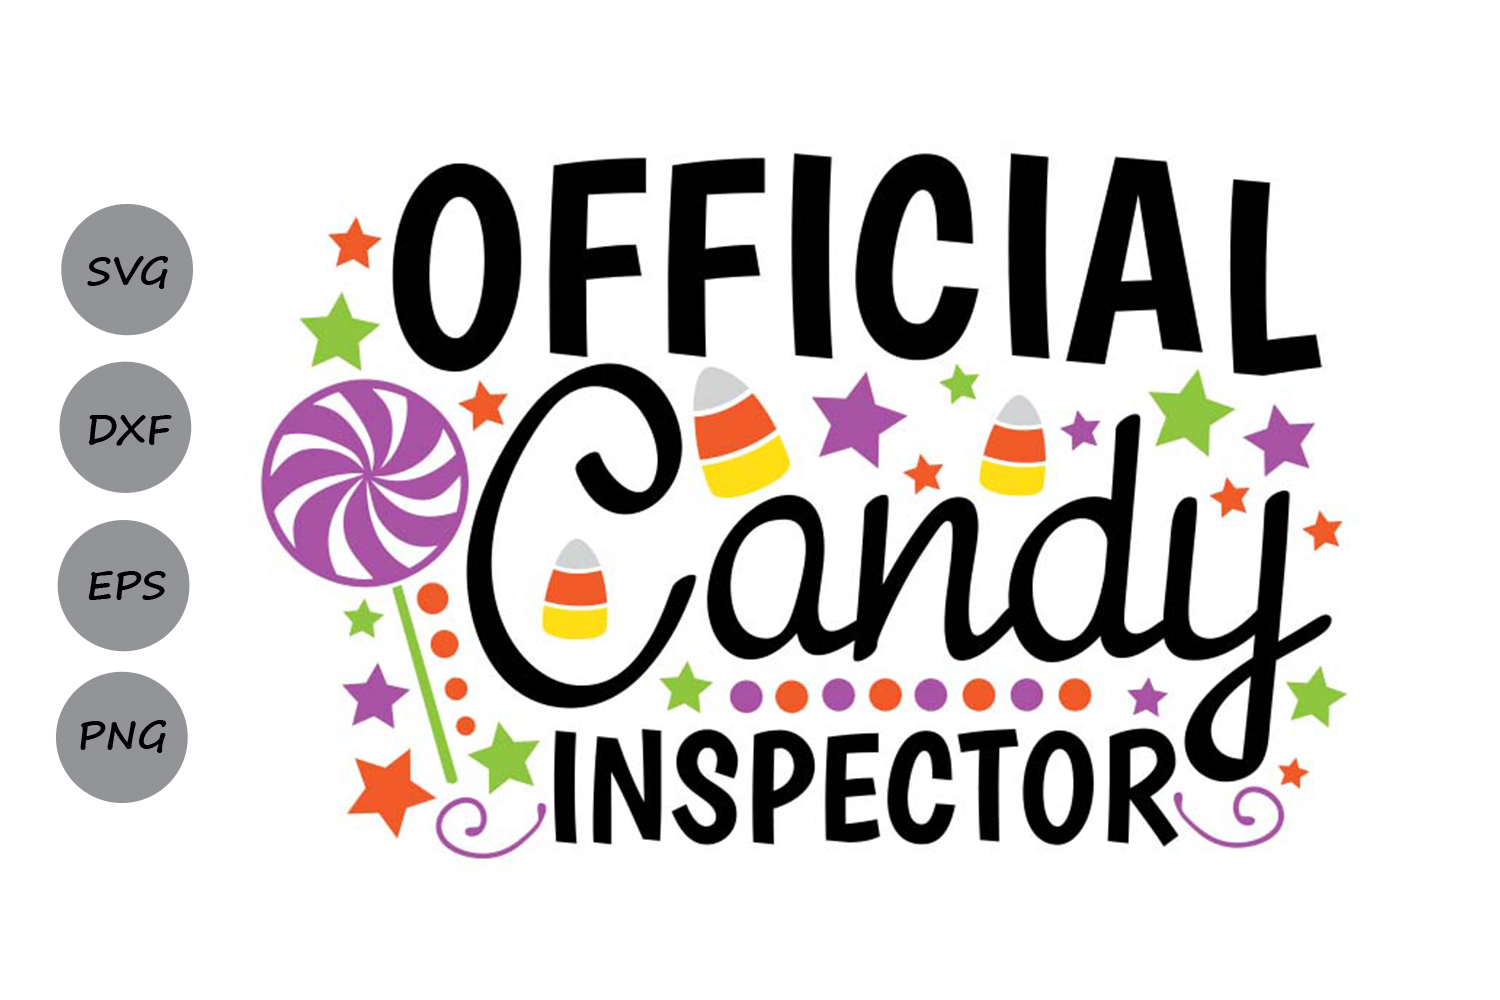 Download Free Official Candy Inspector Svg Graphic By Cosmosfineart for Cricut Explore, Silhouette and other cutting machines.